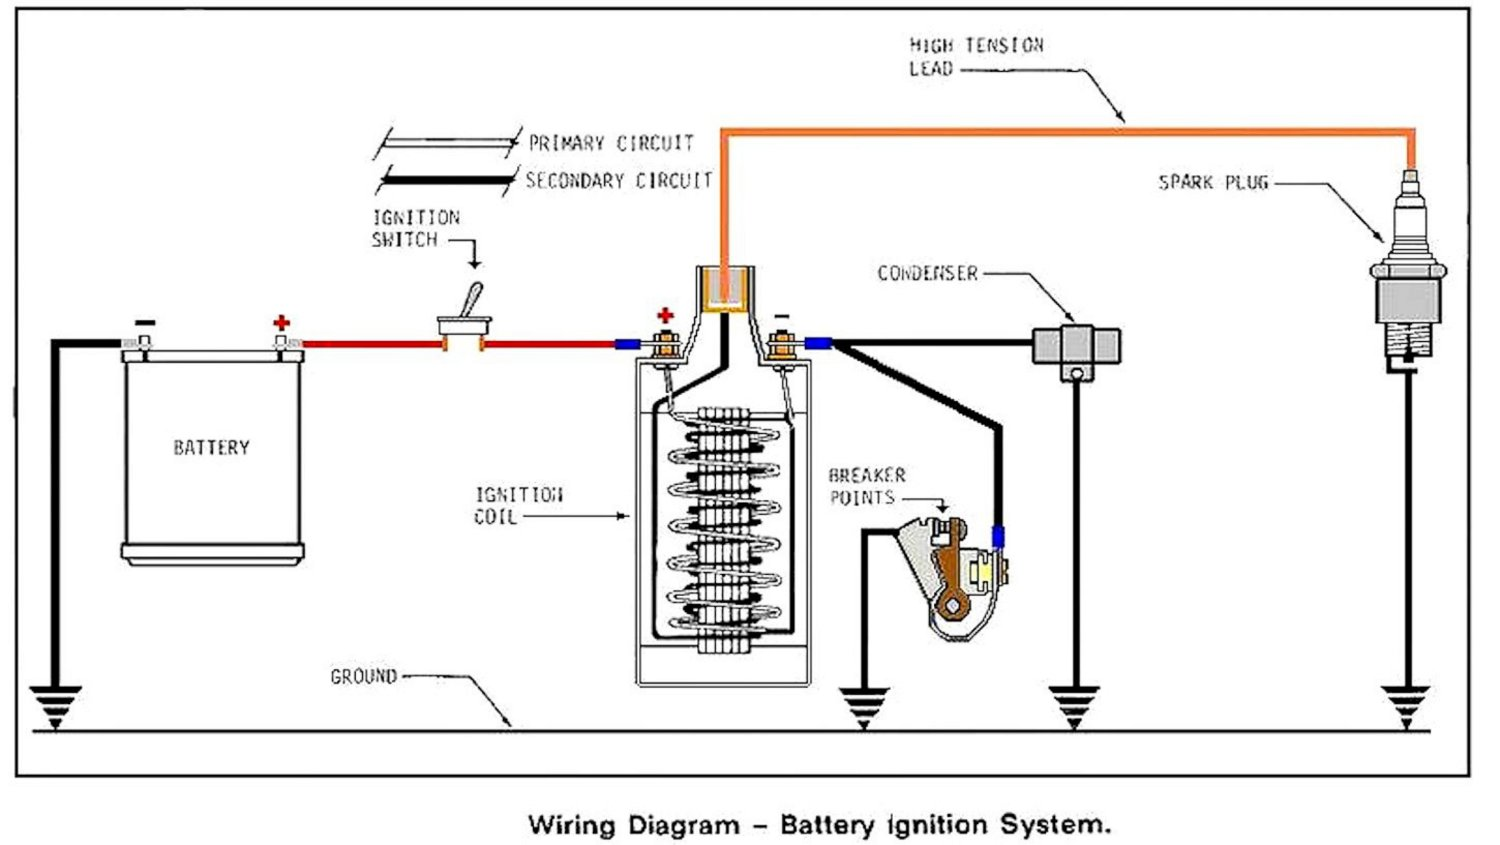 hight resolution of let s take a walk through one complete cycle using the following diagram of a classic battery and coil system as our road map remember that ground is